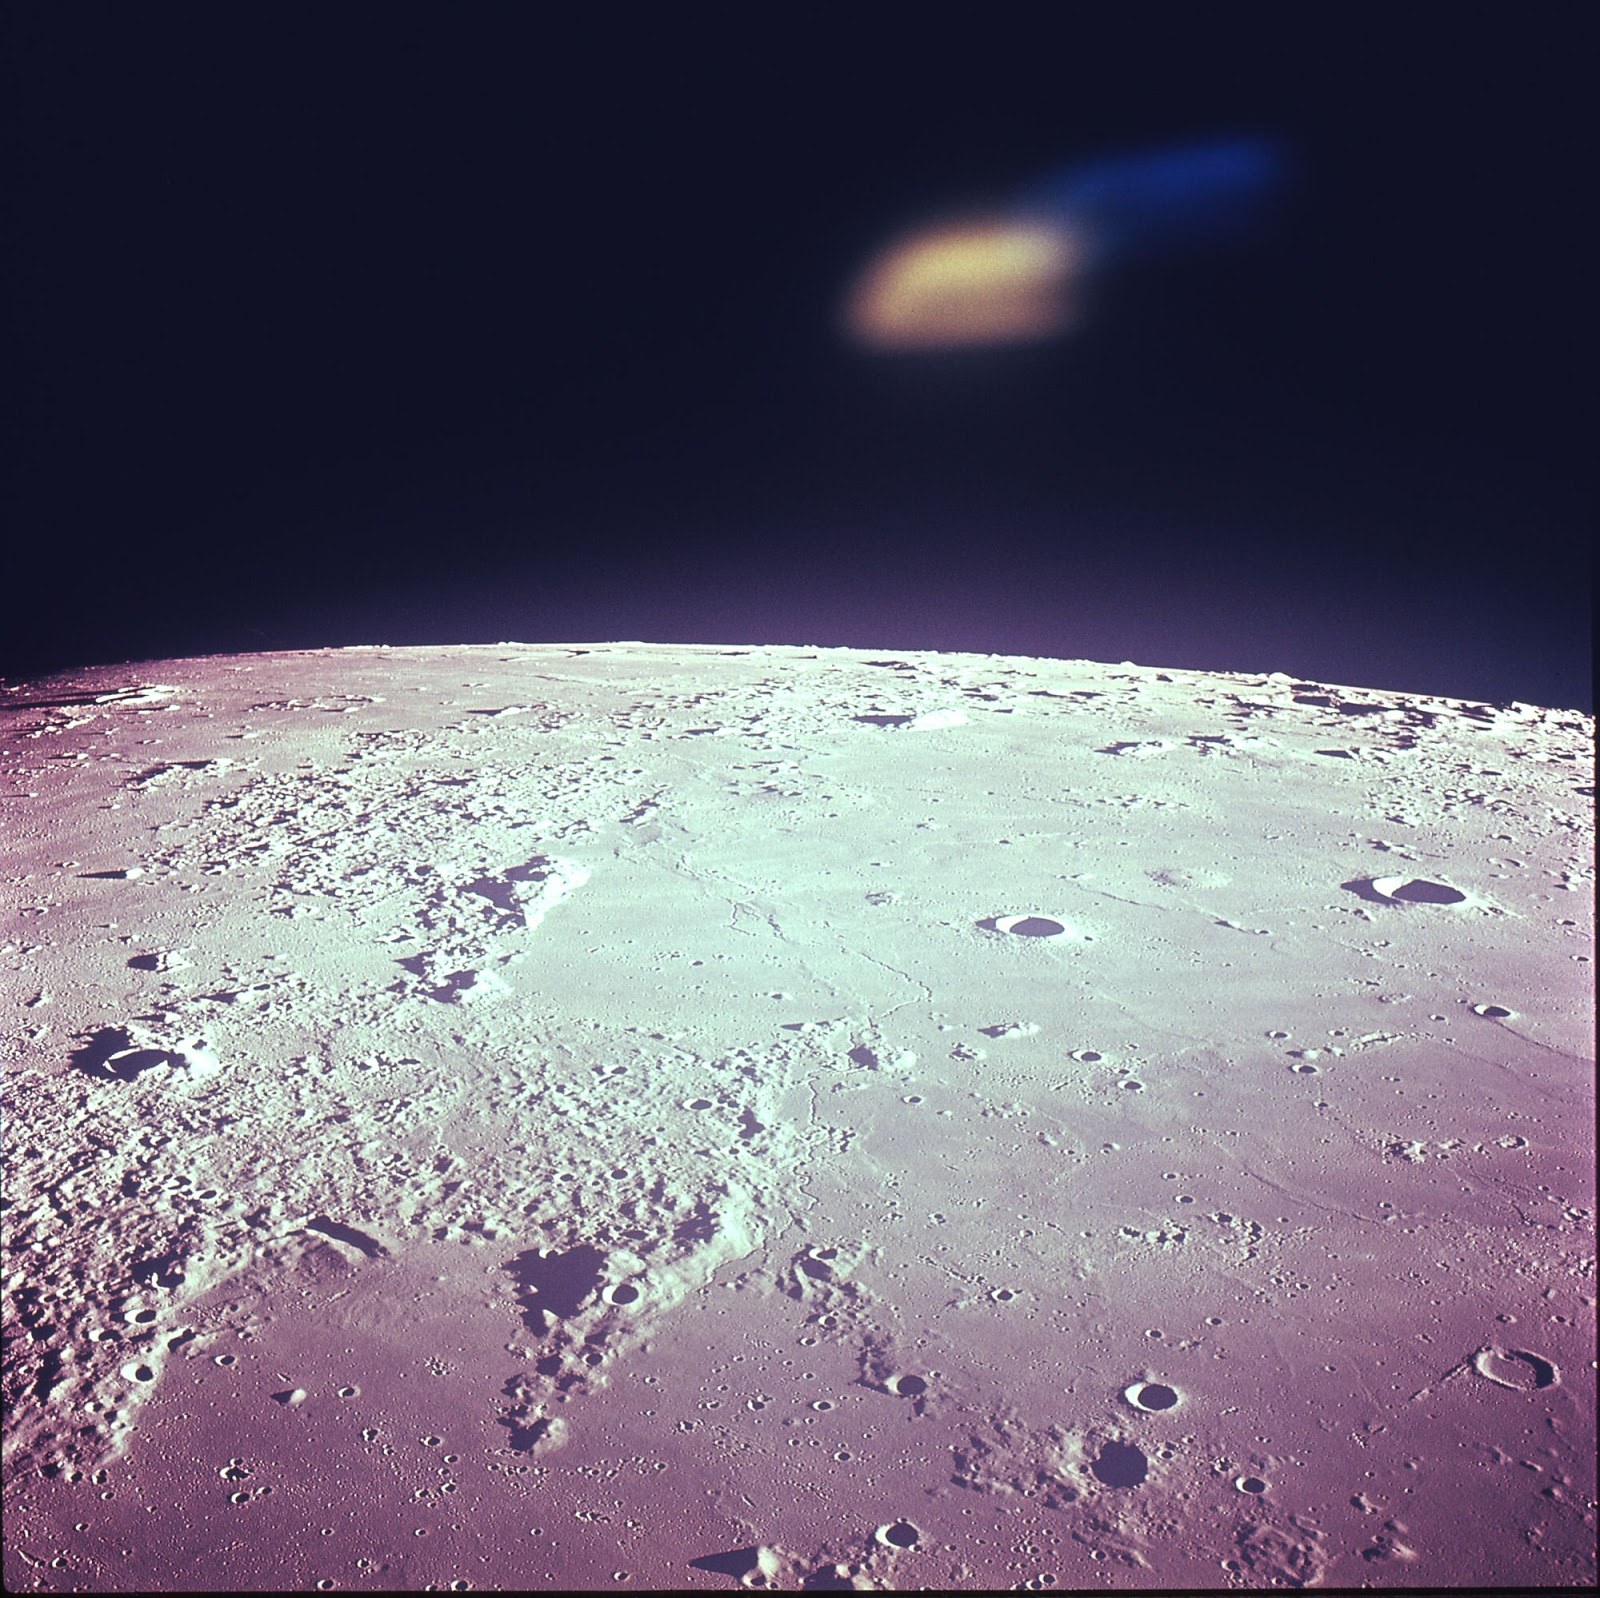 UFO SIGHTINGS DAILY: UFO Discovered In Apollo 12 Mission ...